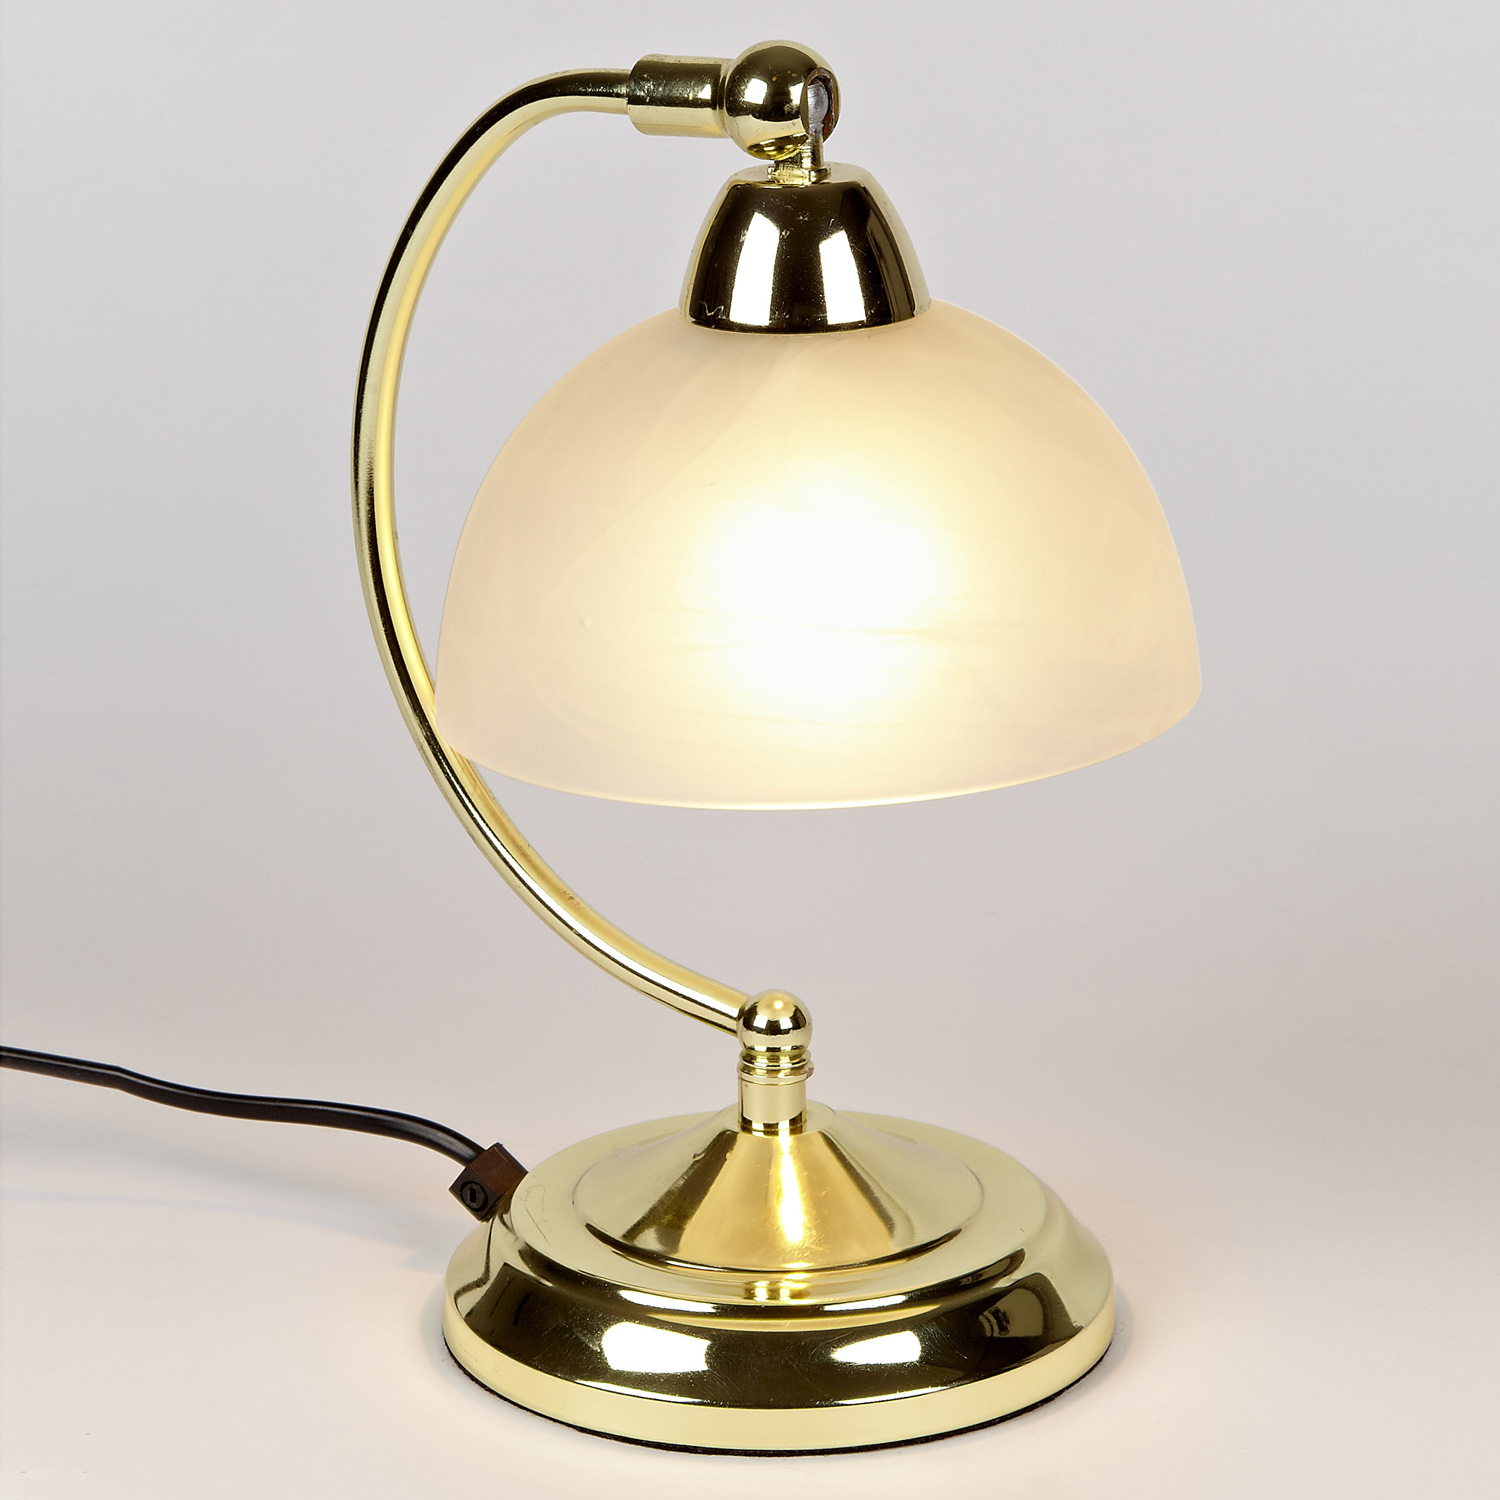 Glass touch lamp ability to add class to any room warisan lighting glass touch lamp ability to add class to any room aloadofball Image collections